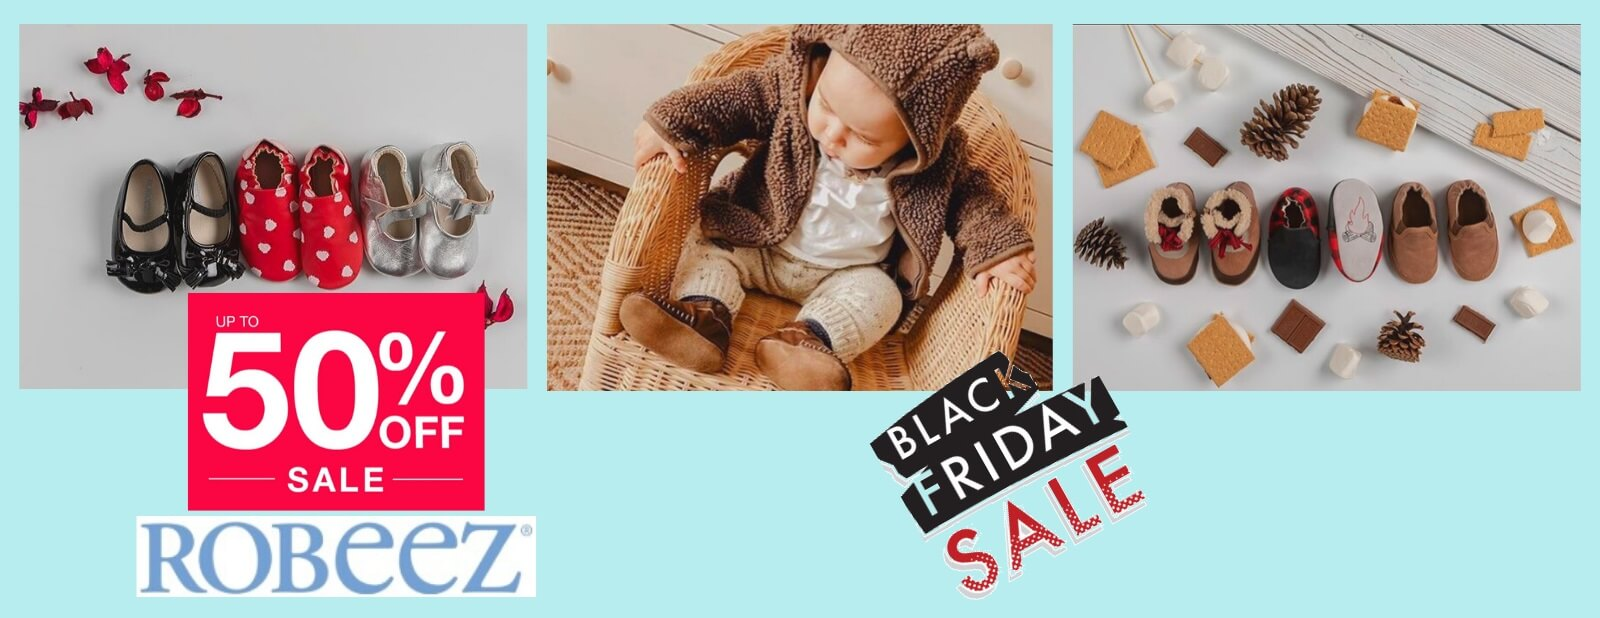 robeez baby shoes black friday sale